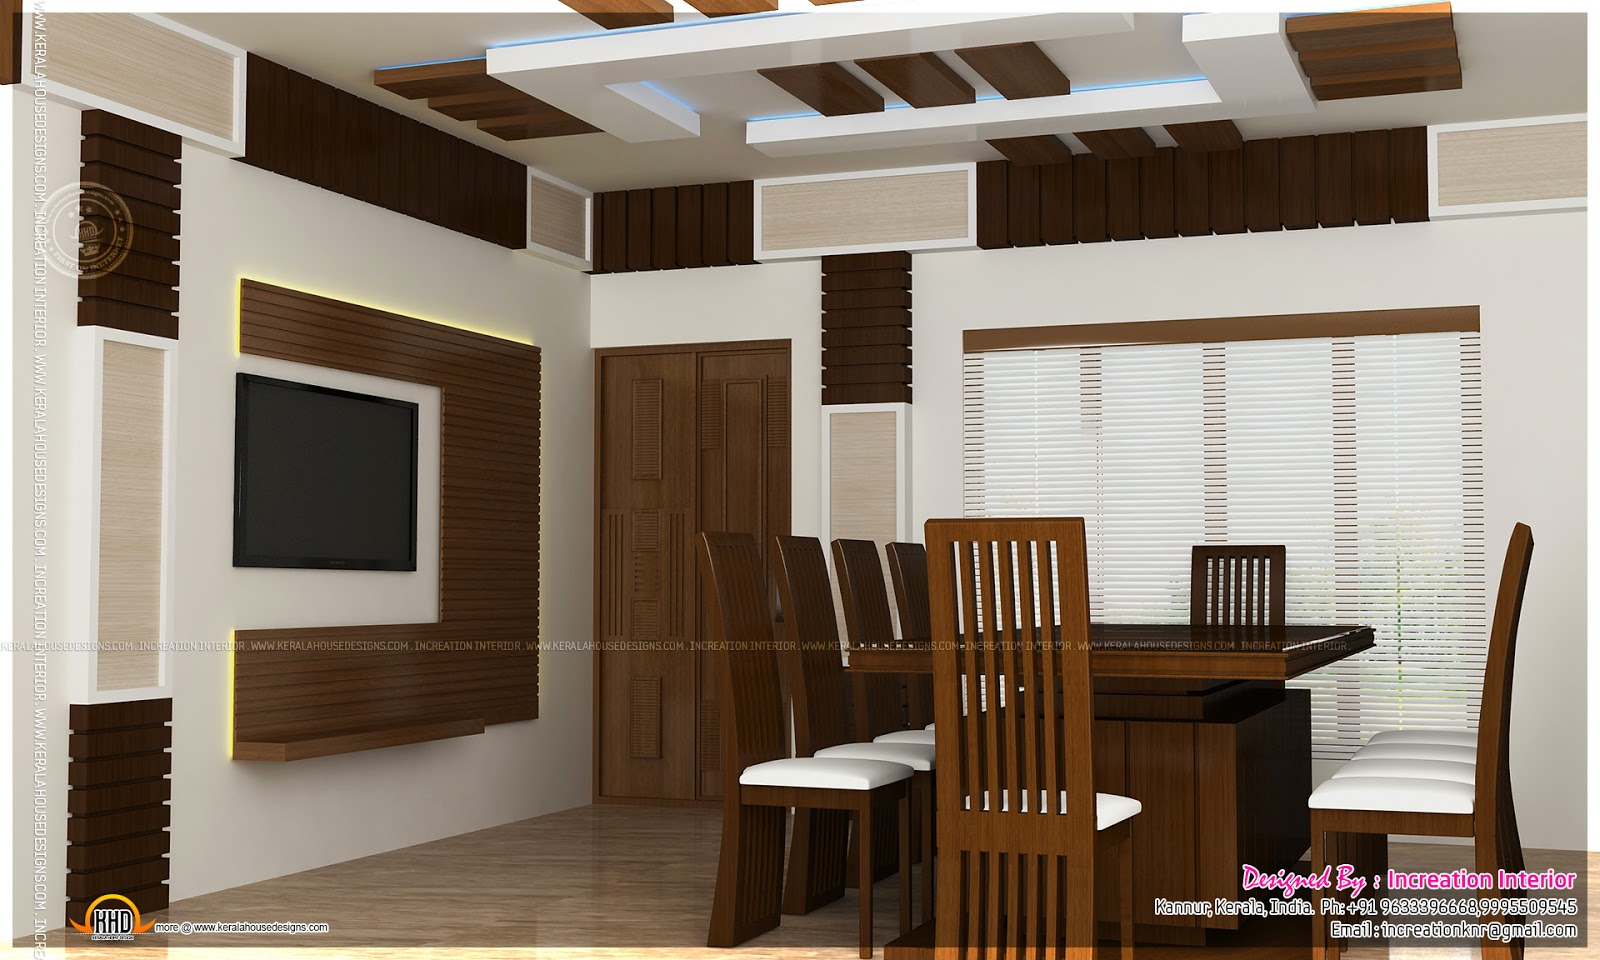 Interior design ideas by increation interior kerala for Indoor house design ideas